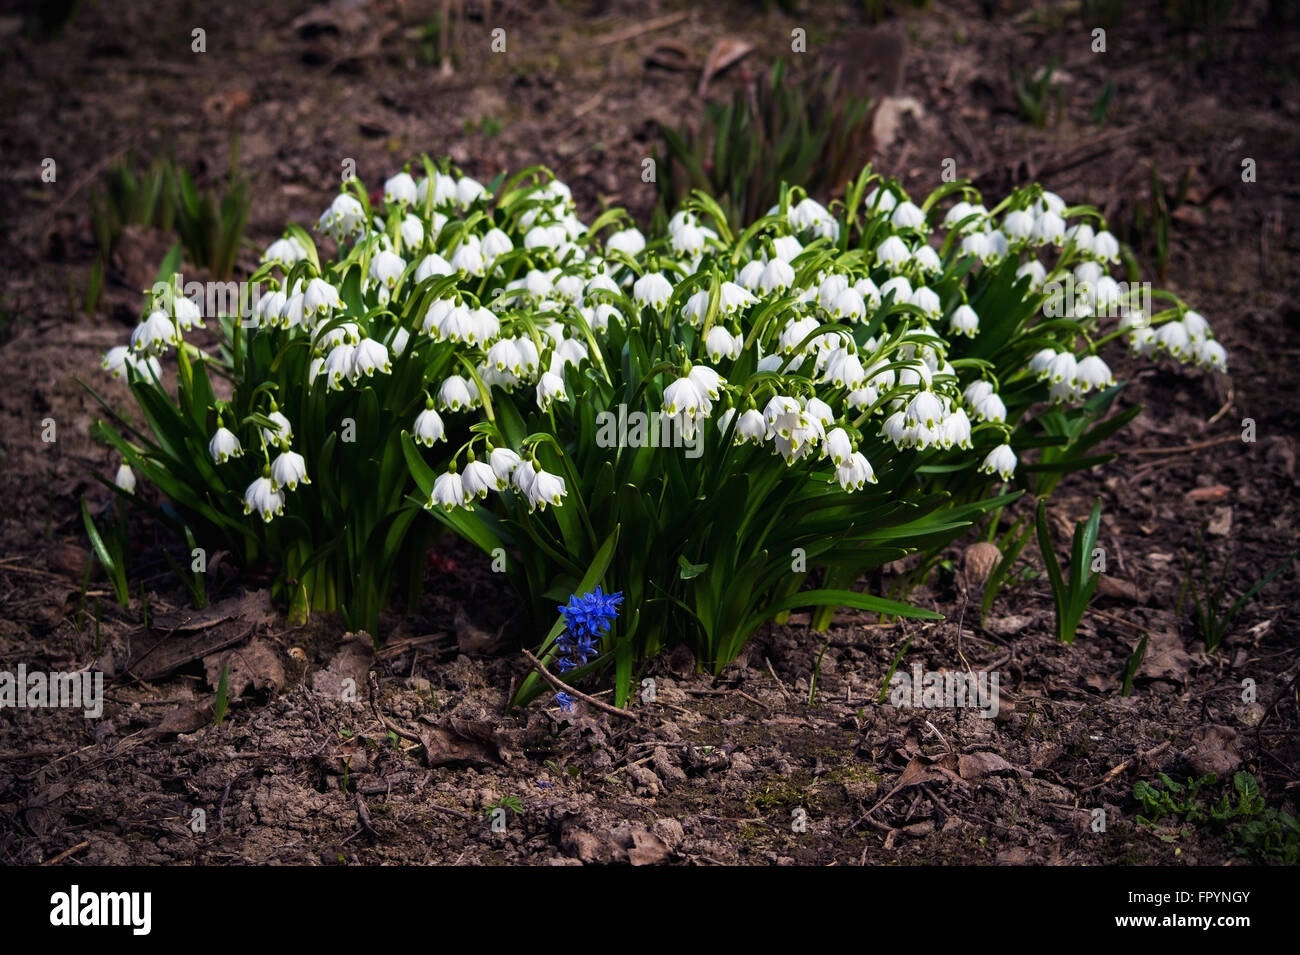 Snowdrops Are The First Spring Flowers That Bloom Early Spring They